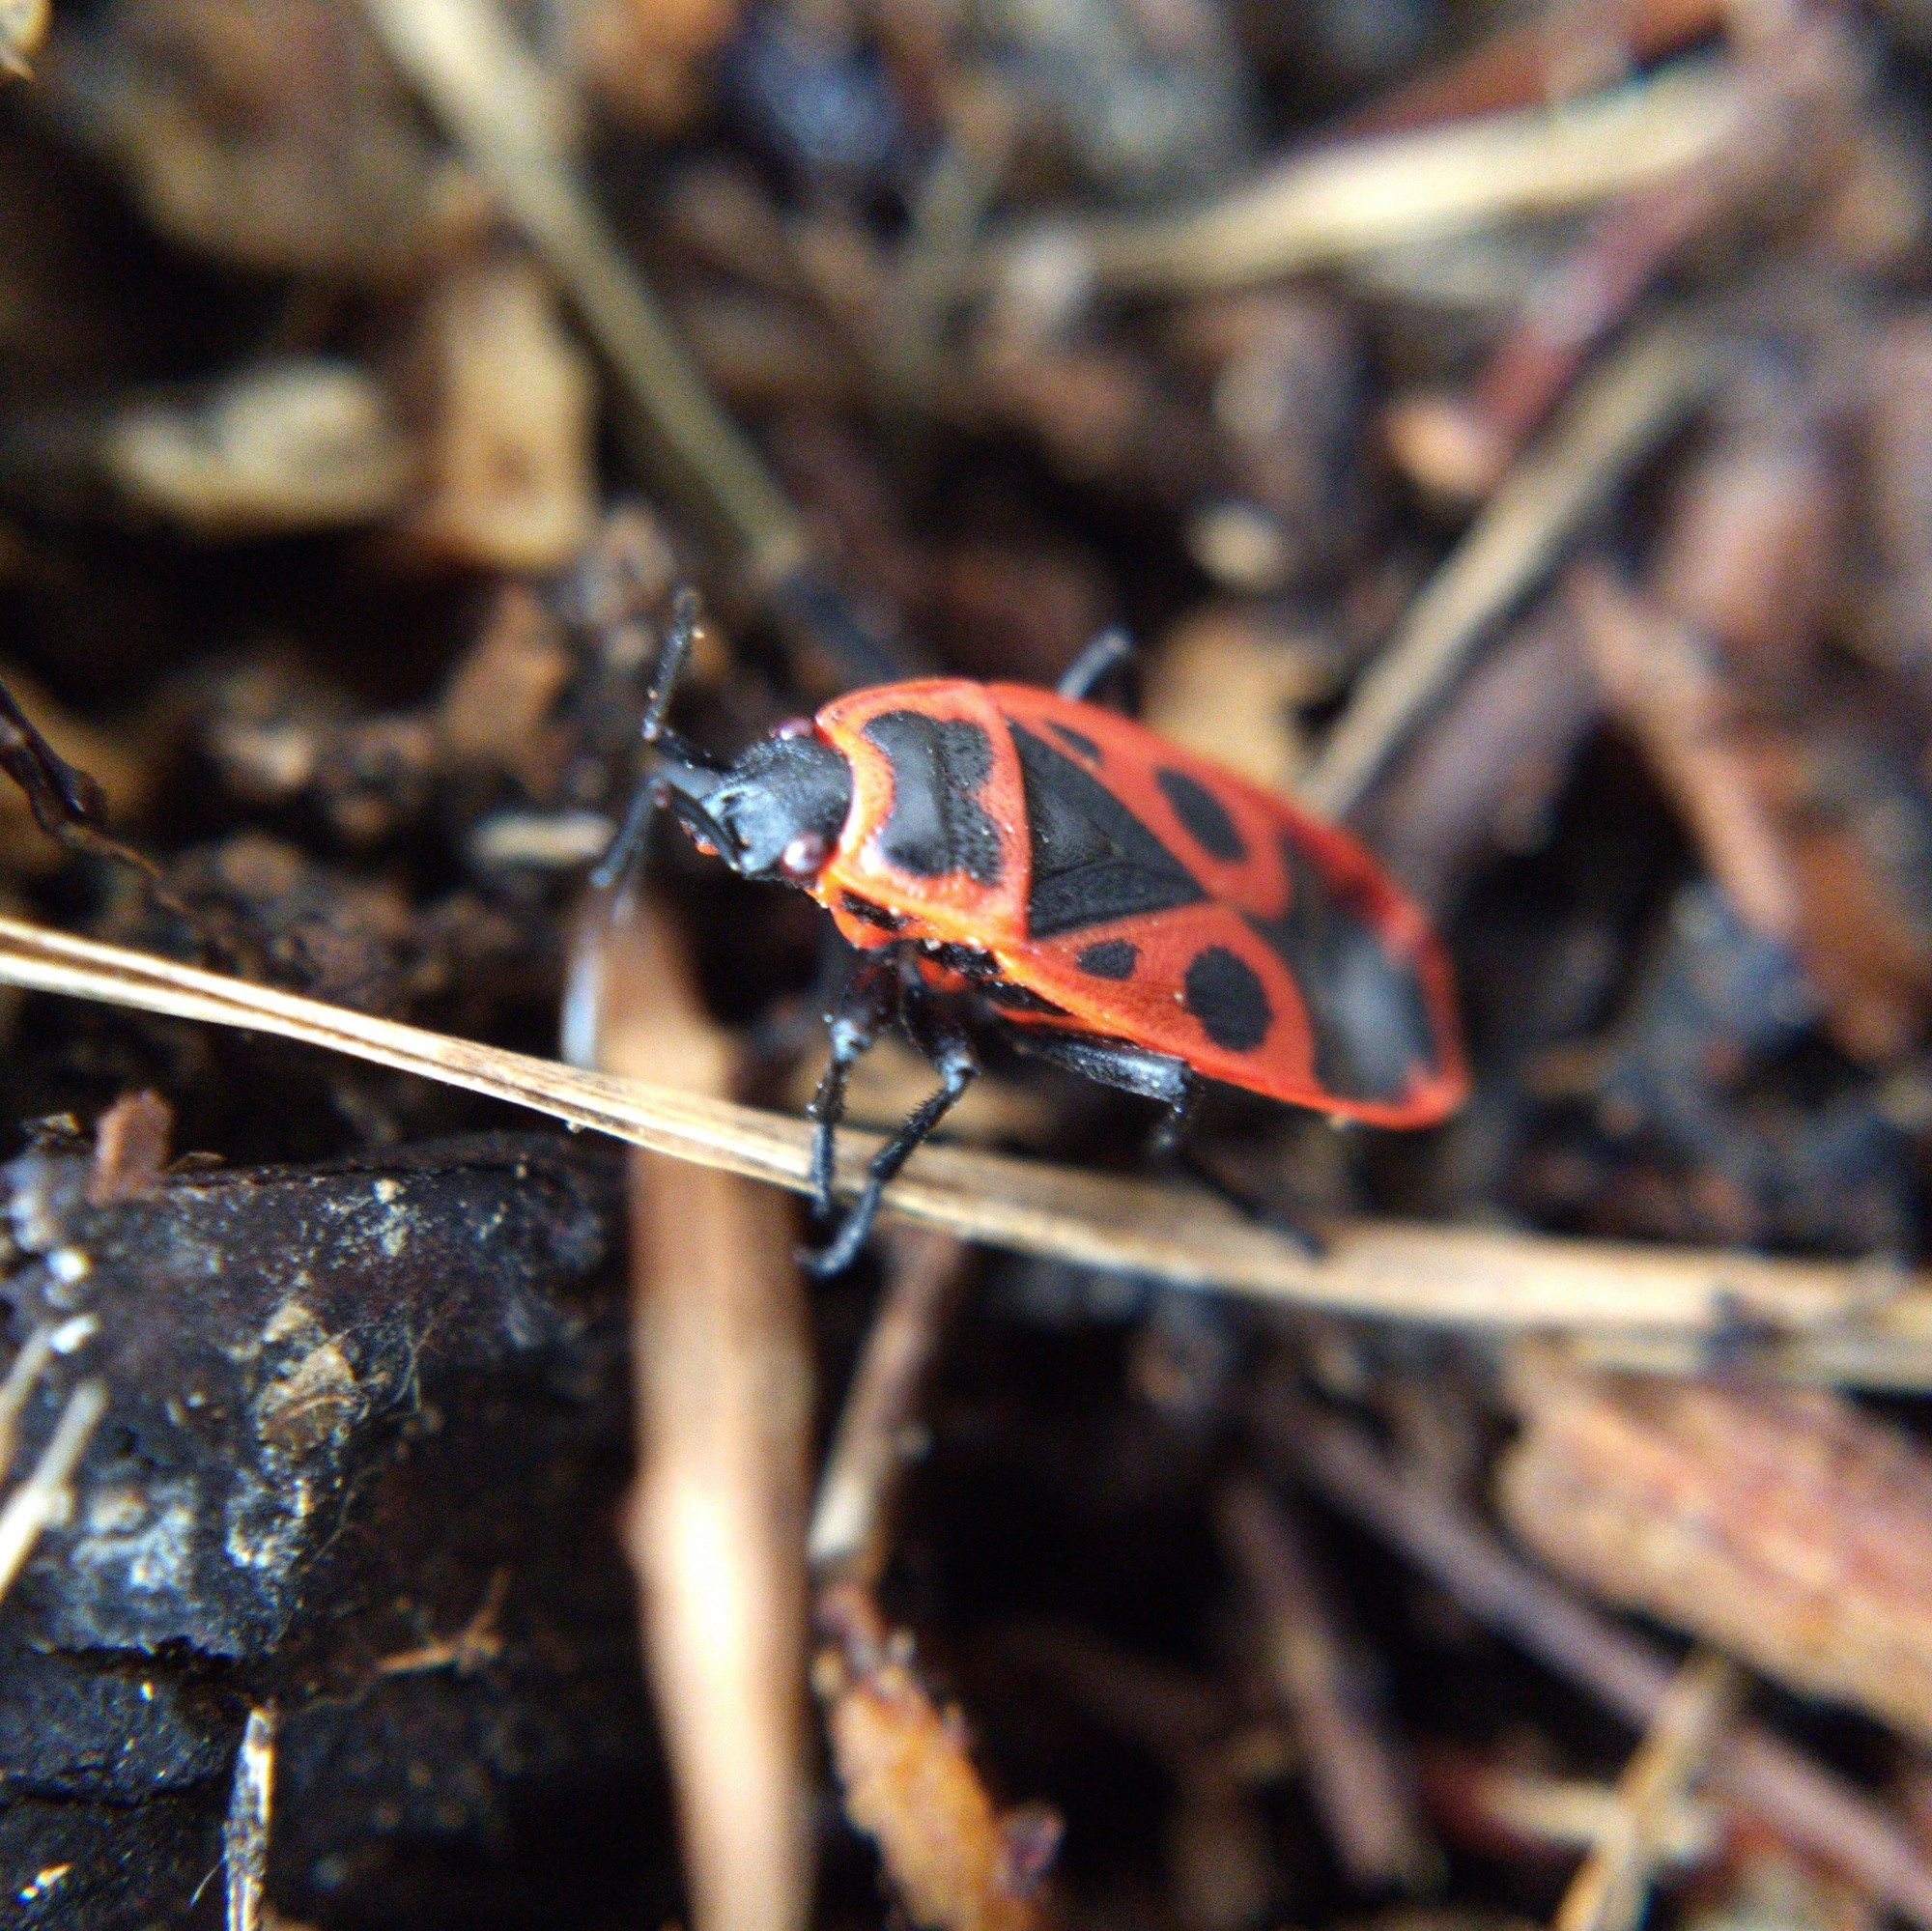 A bug with a striking red and black pattern on its back